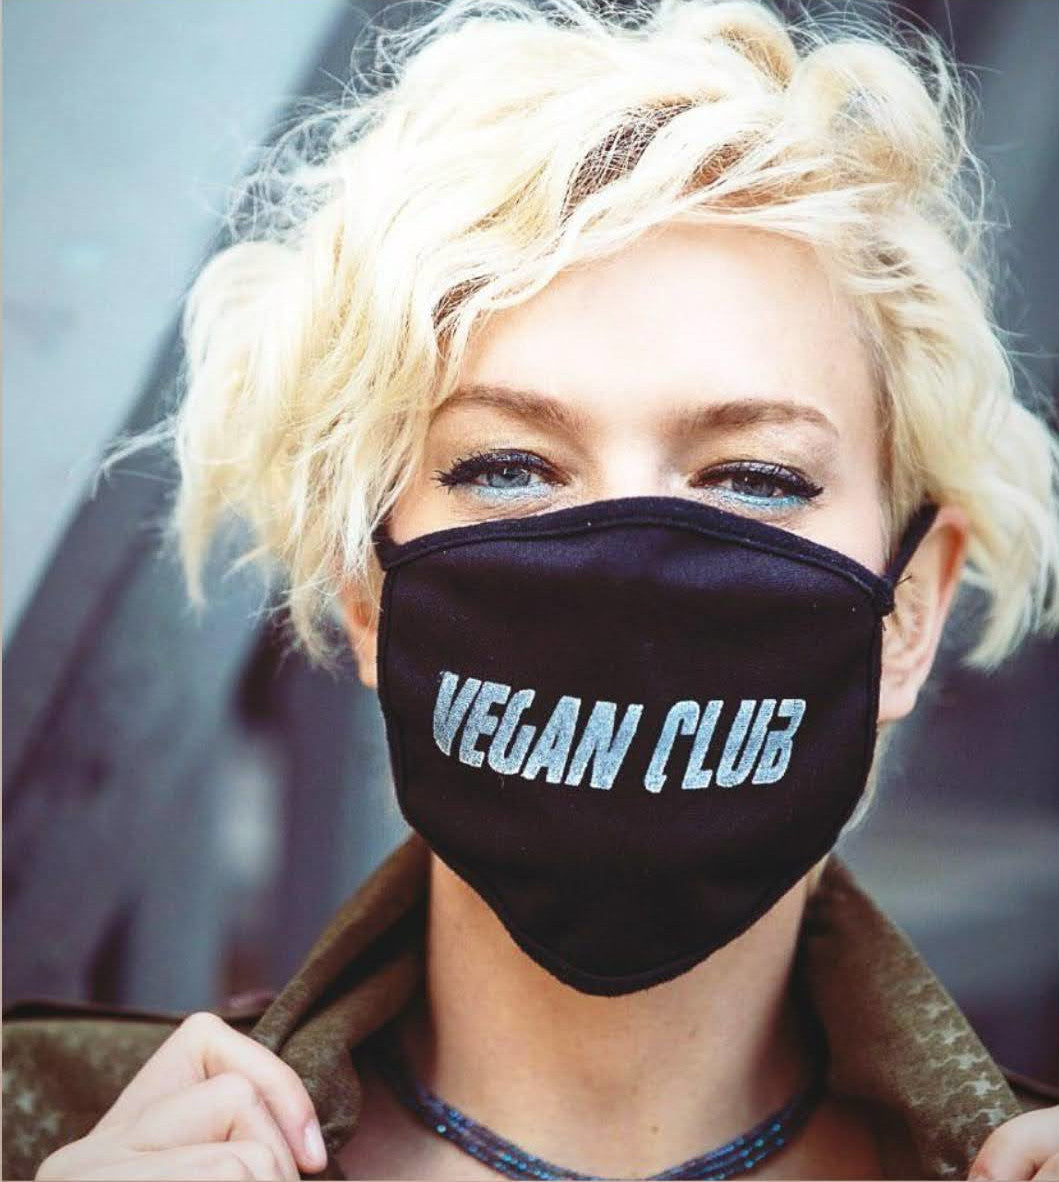 Vegan Club Mask. Fight with a Statement!